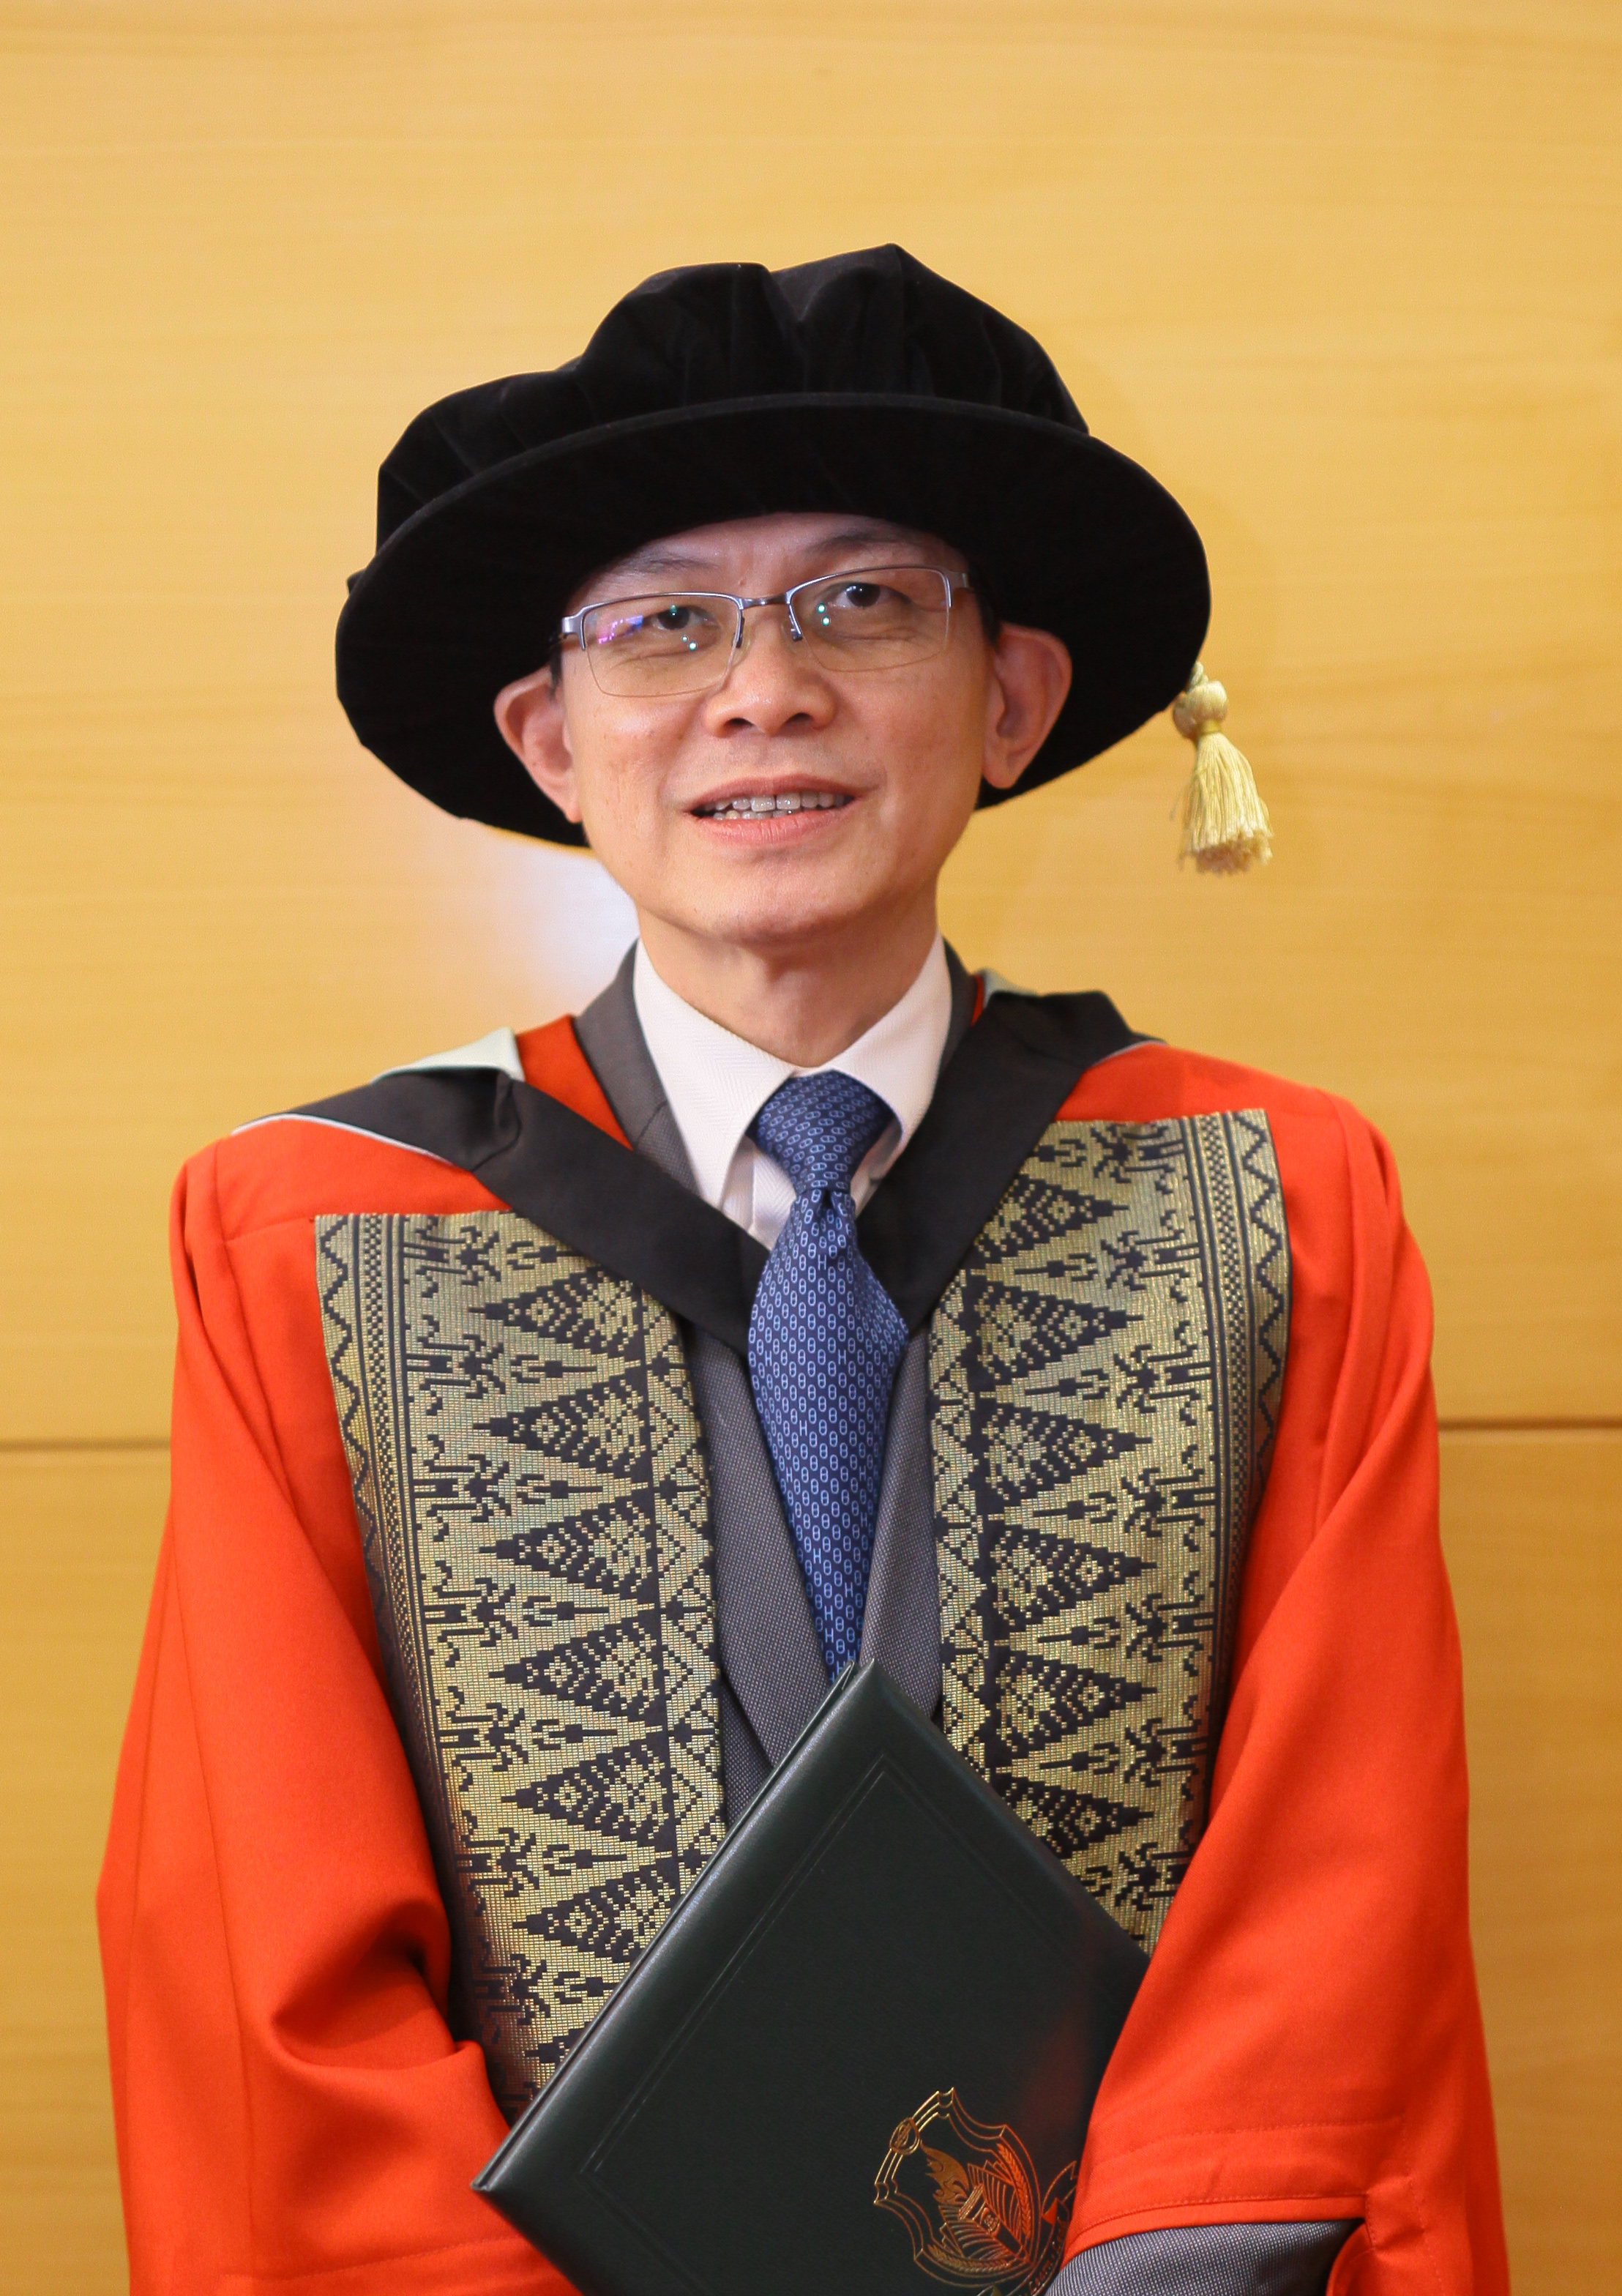 DATO' GOOI HOE SOON - DOCTOR OF BUSINESS